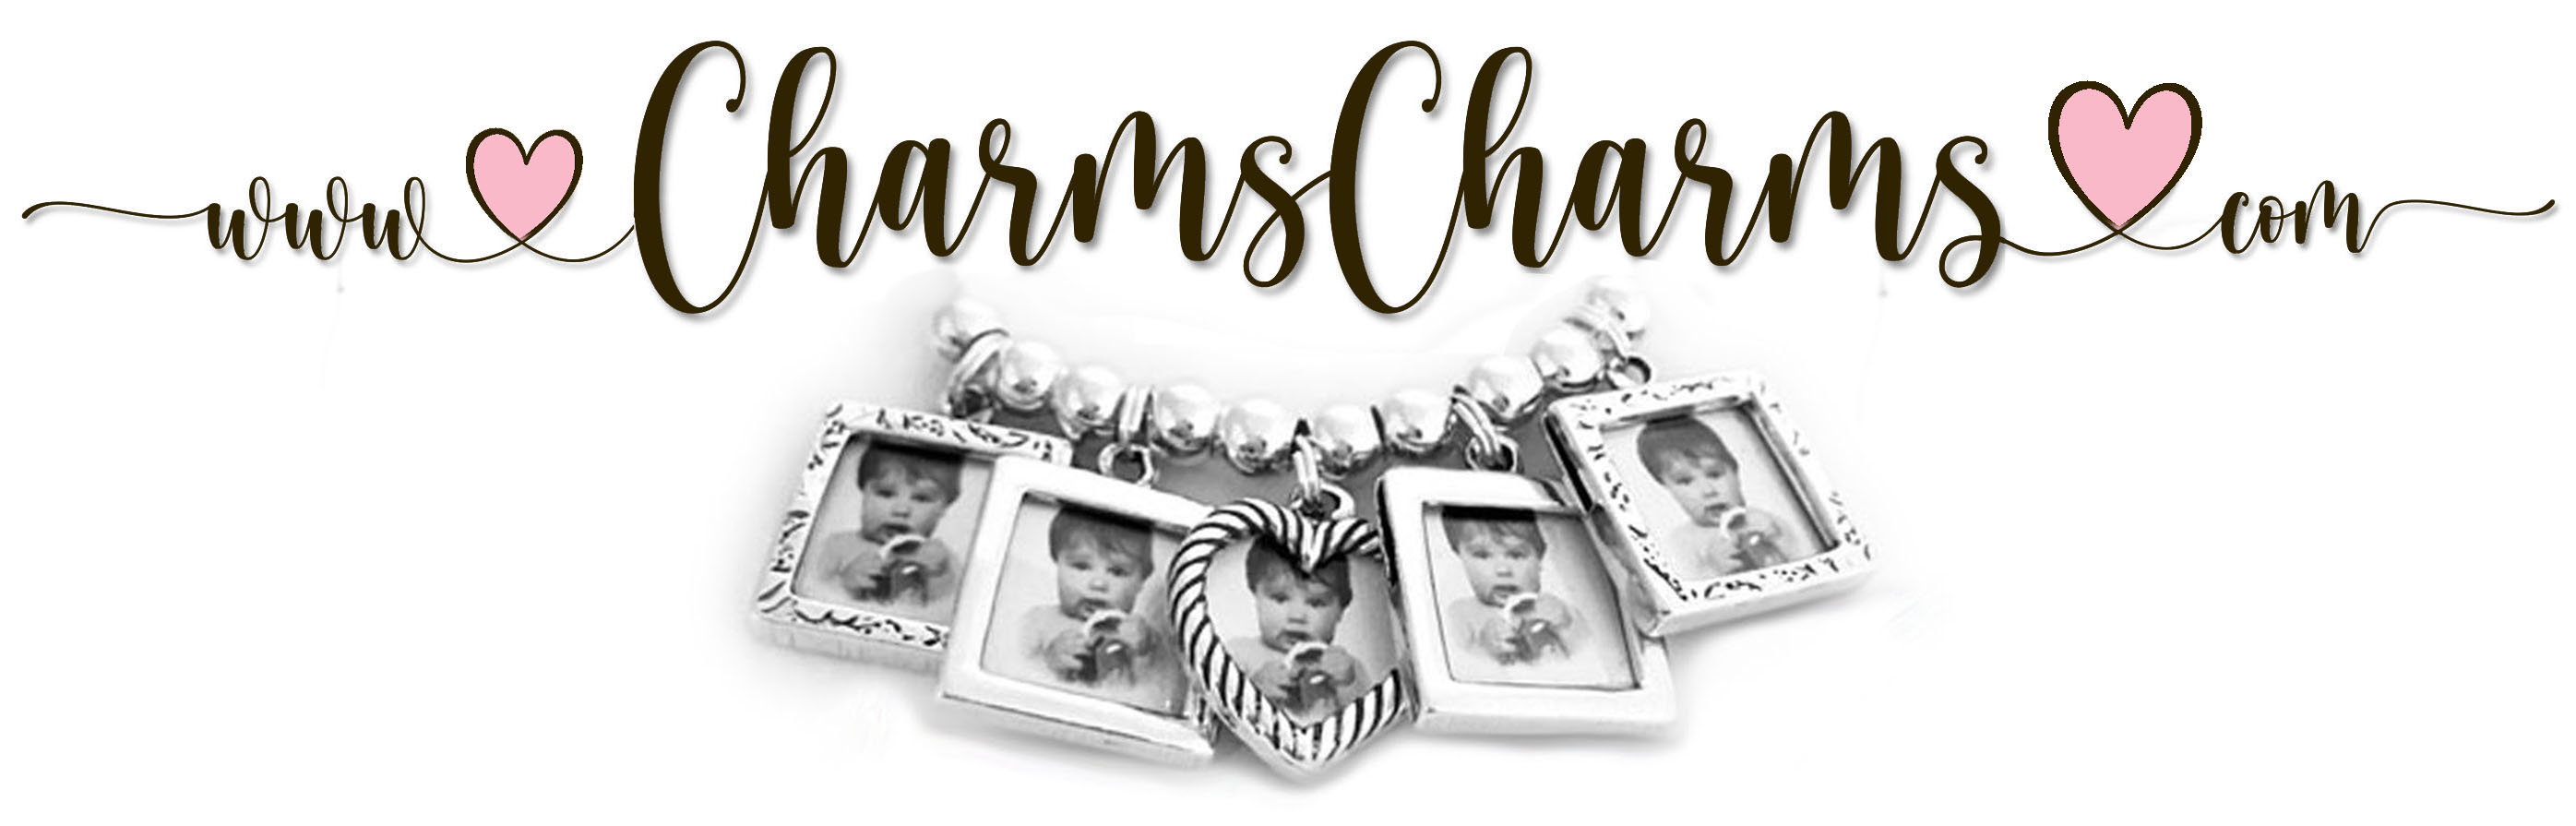 Charm Bracelets - Charm Necklaces - Just Charms